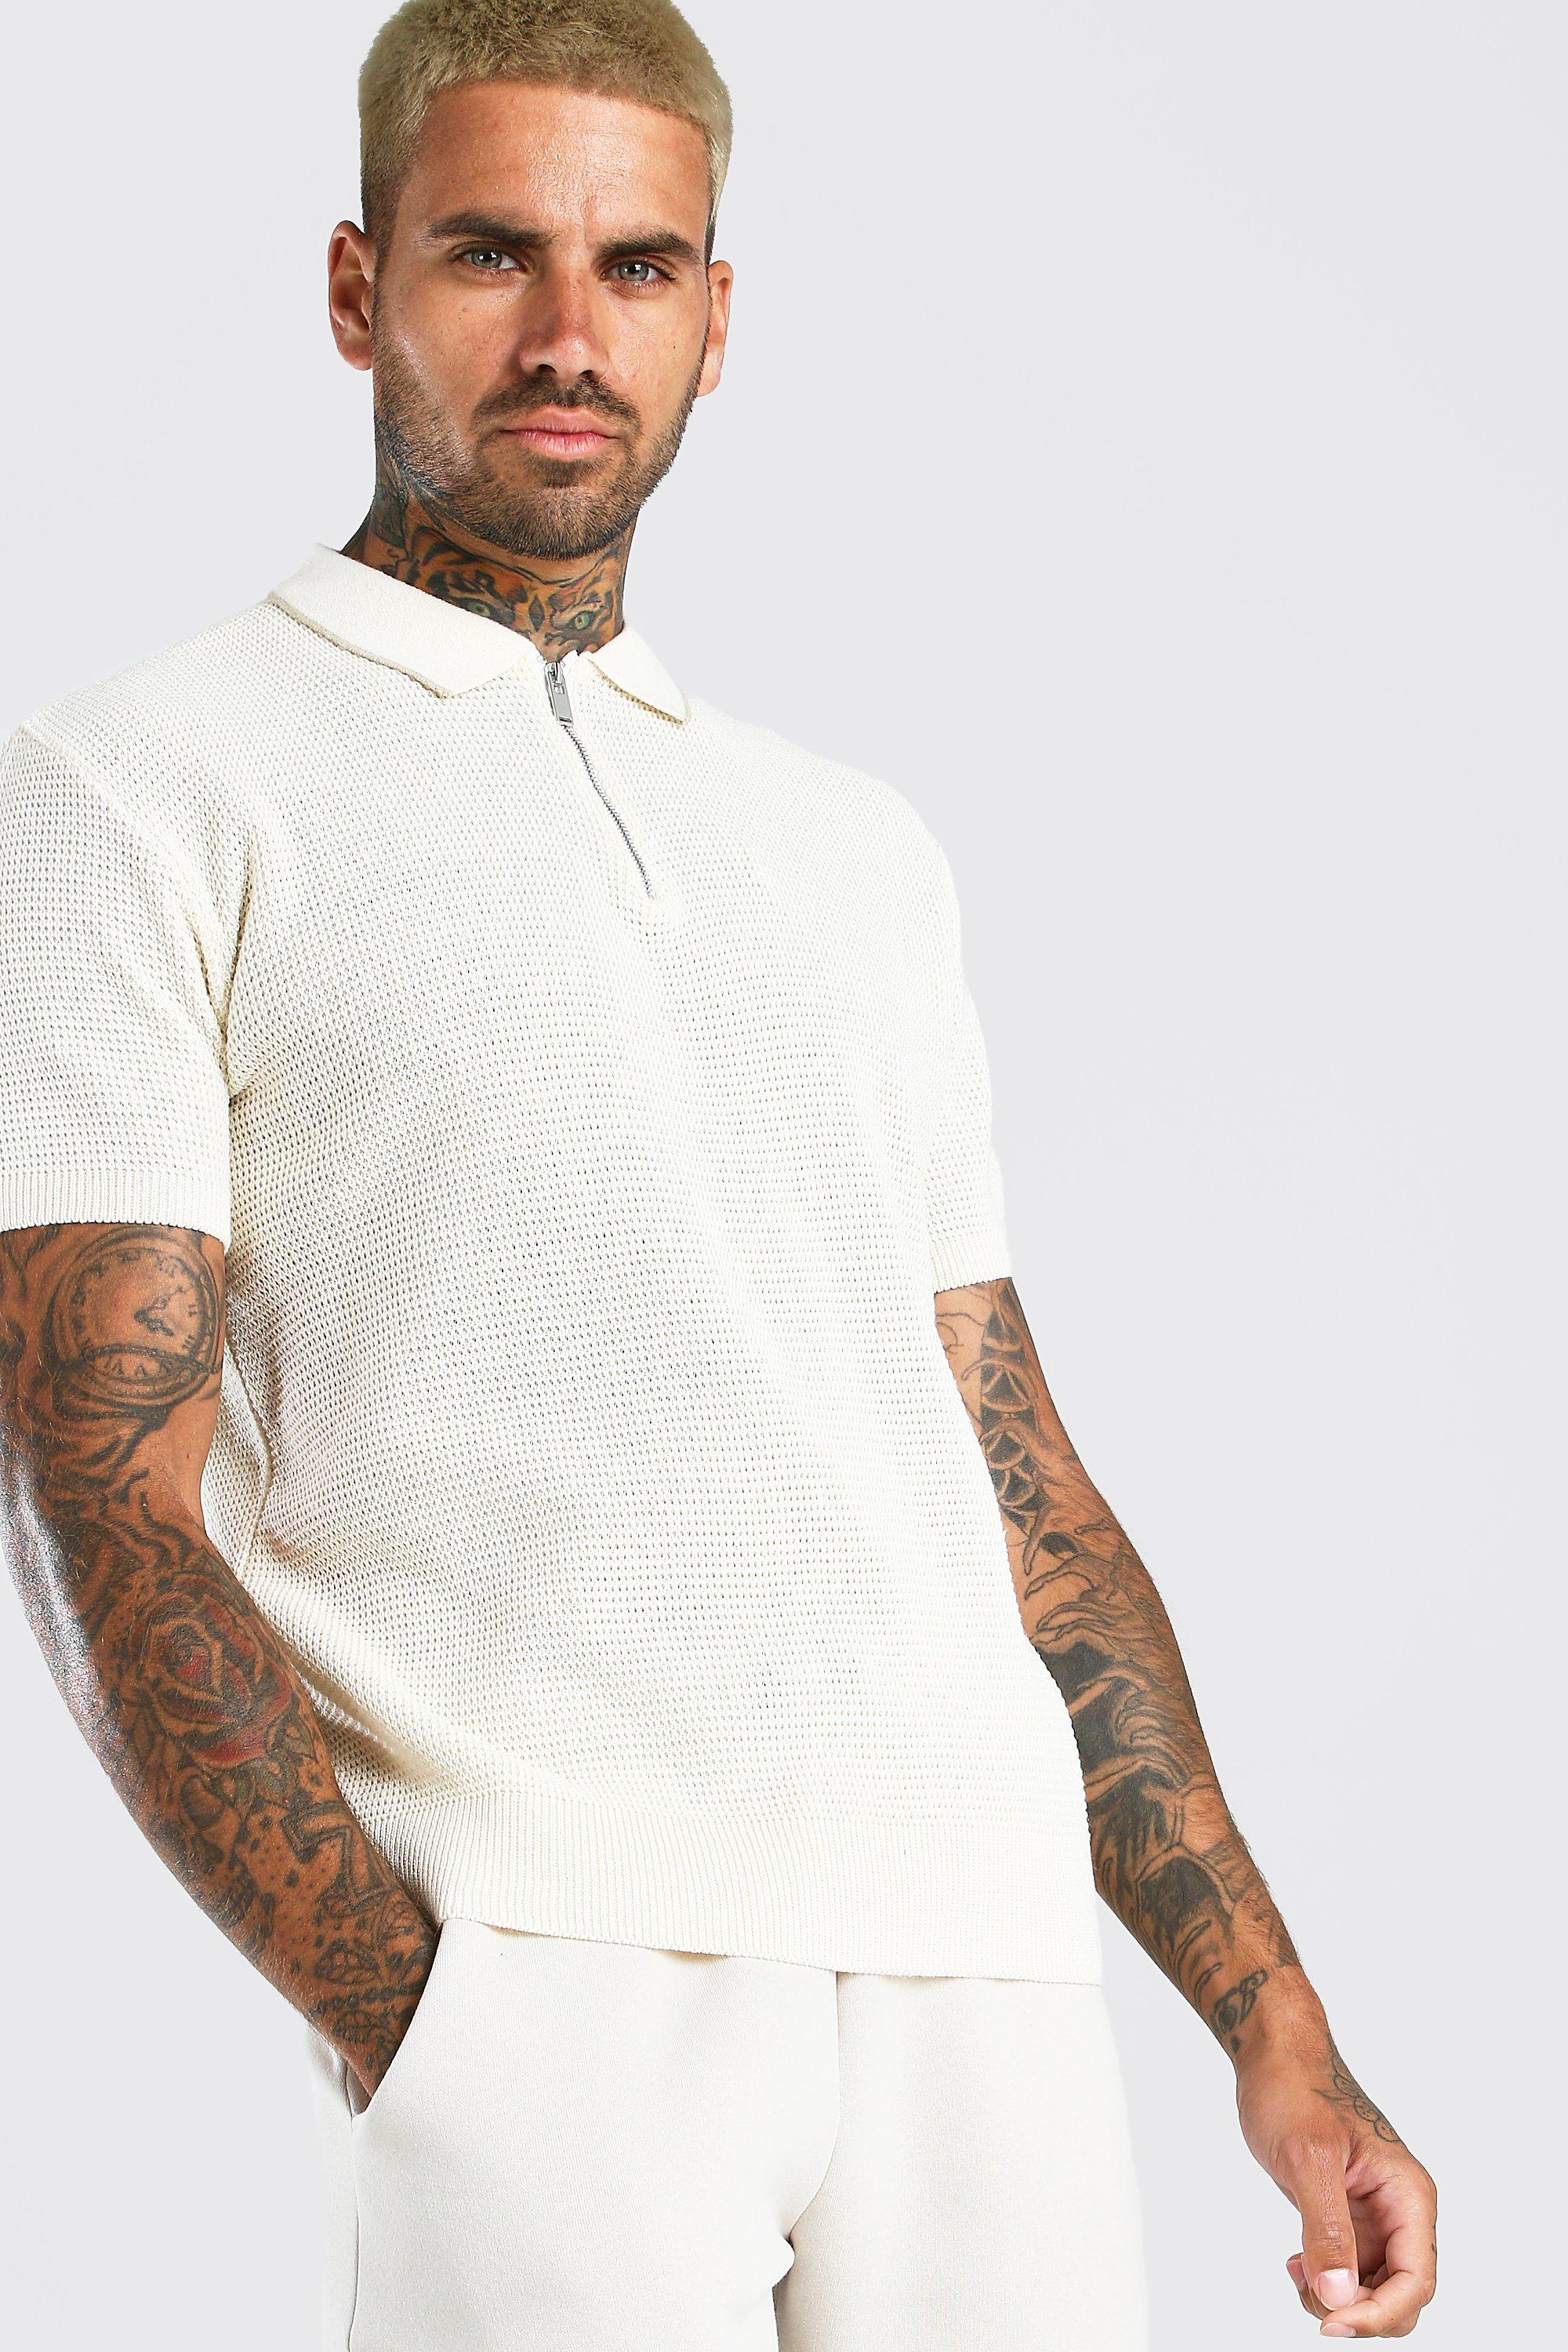 Mens Vintage Shirts – Casual, Dress, T-shirts, Polos Mens Short Sleeve Knitted Half Zip Polo with Tipping - White $14.40 AT vintagedancer.com